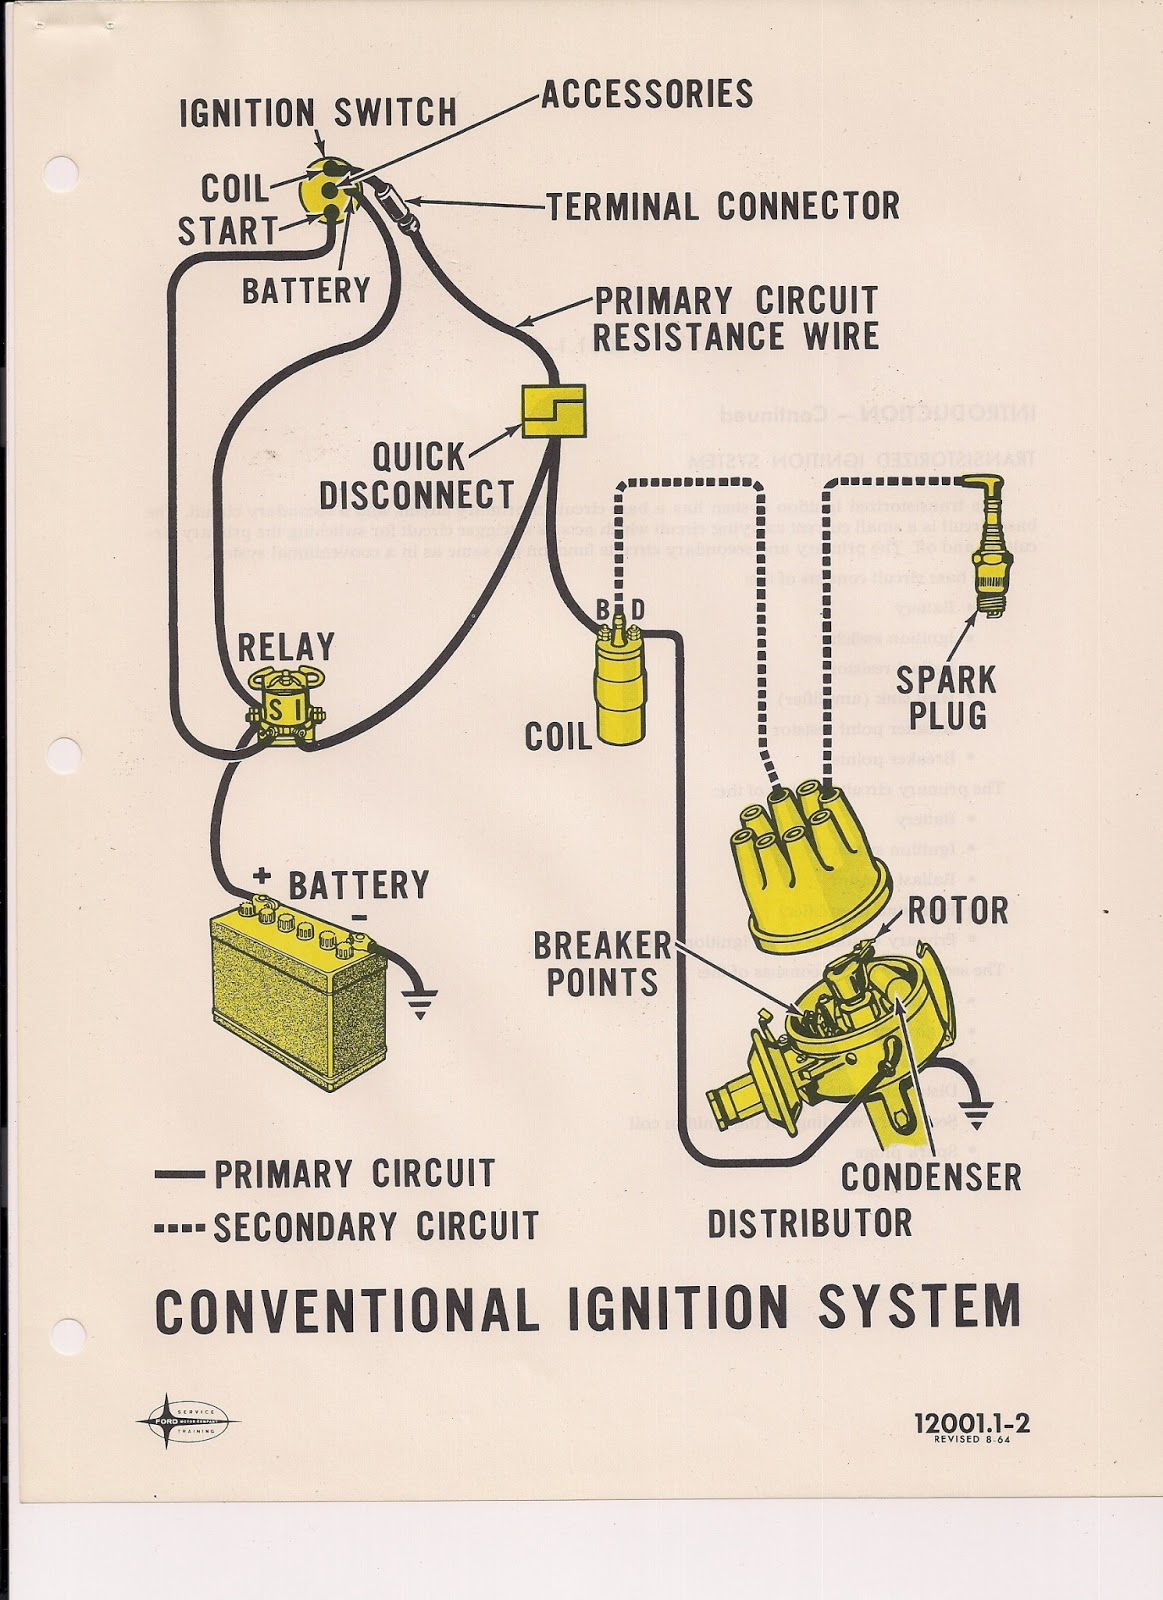 Ignition+1 the care and feeding of ponies mustang ignition system 1965 and 1966 Mopar Ignition Switch Wiring Diagram at creativeand.co